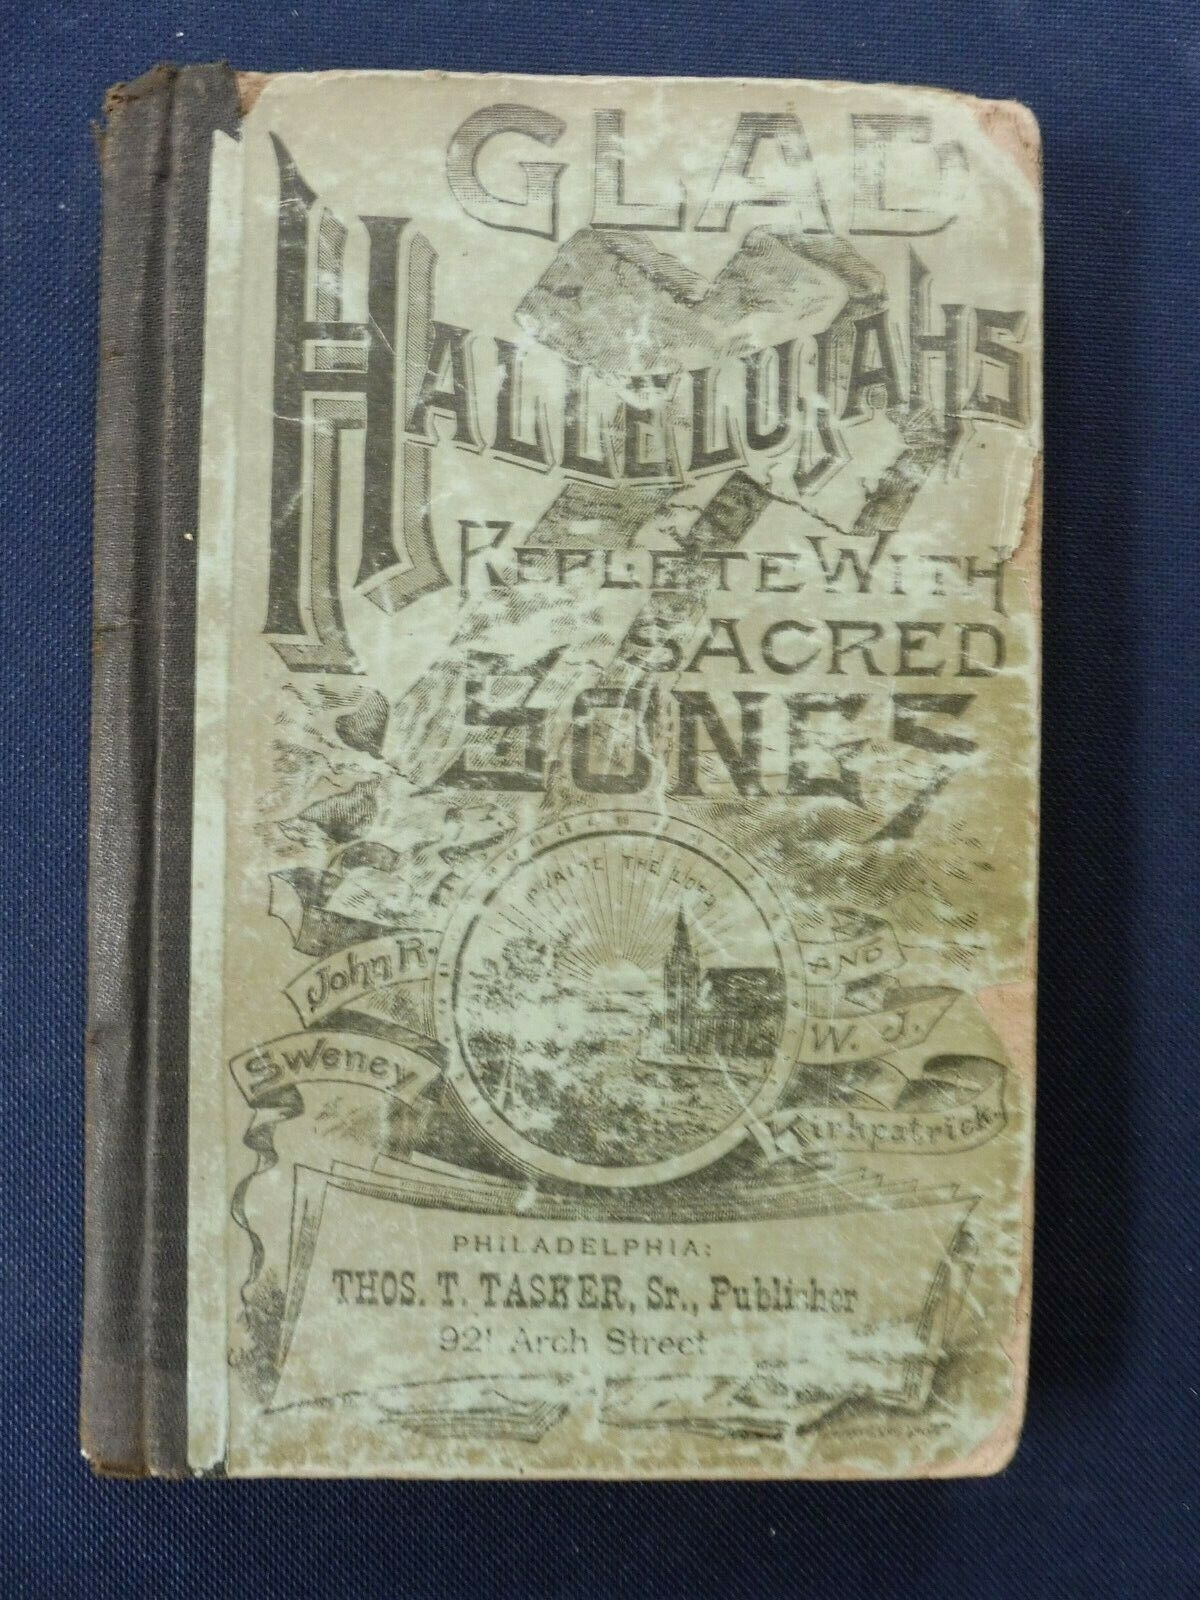 Glad Hallelujahs Replete With Sacred Songs 1887  - $25.00